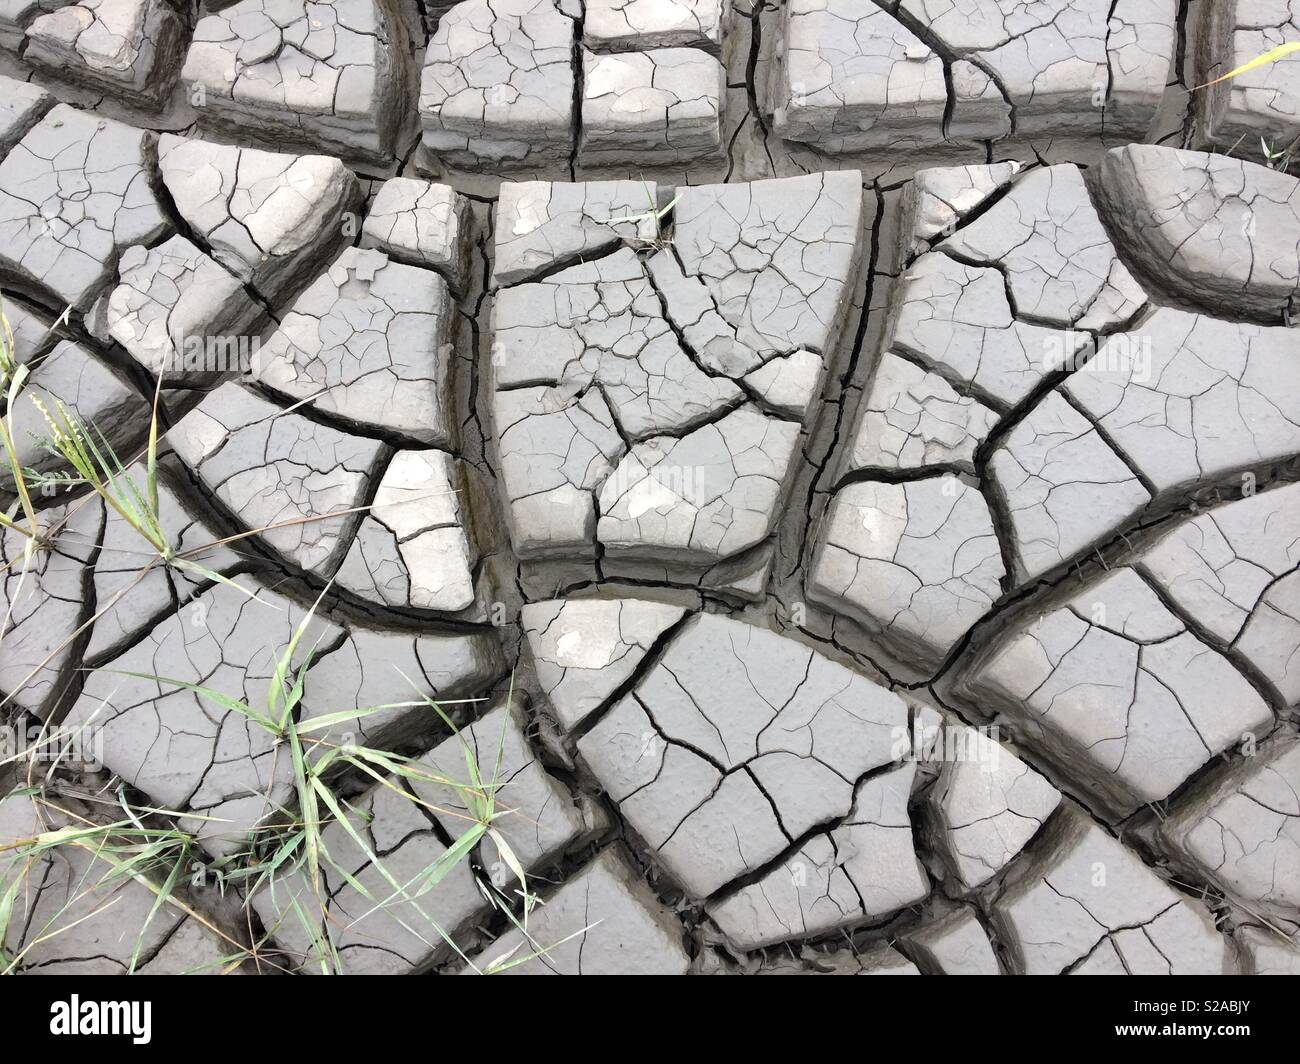 Life in dryness - Stock Image